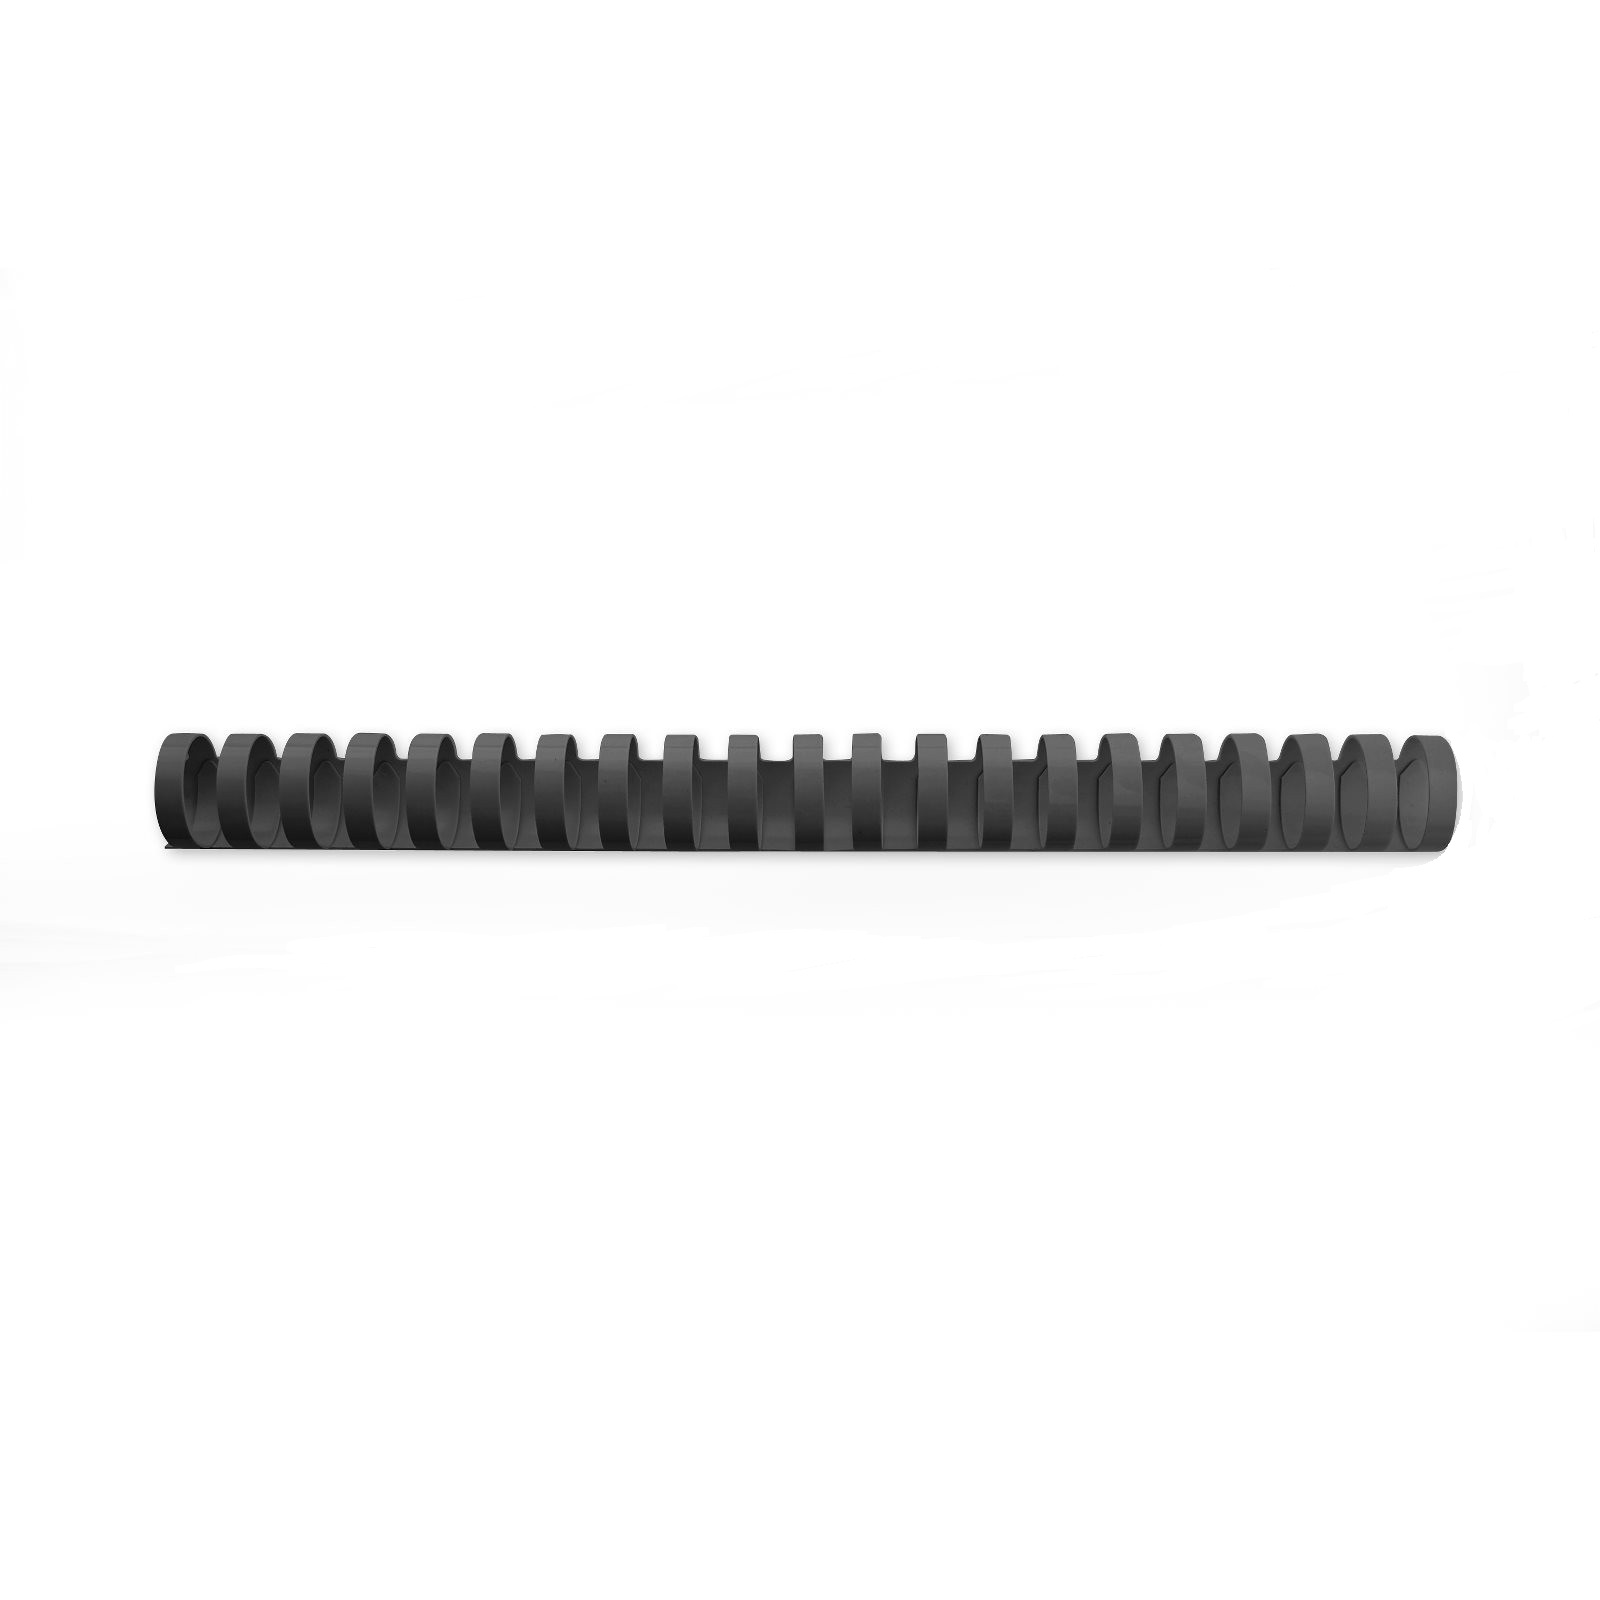 GBC Binding Combs 21 Ring A412mm Black 4028177 (PK100)